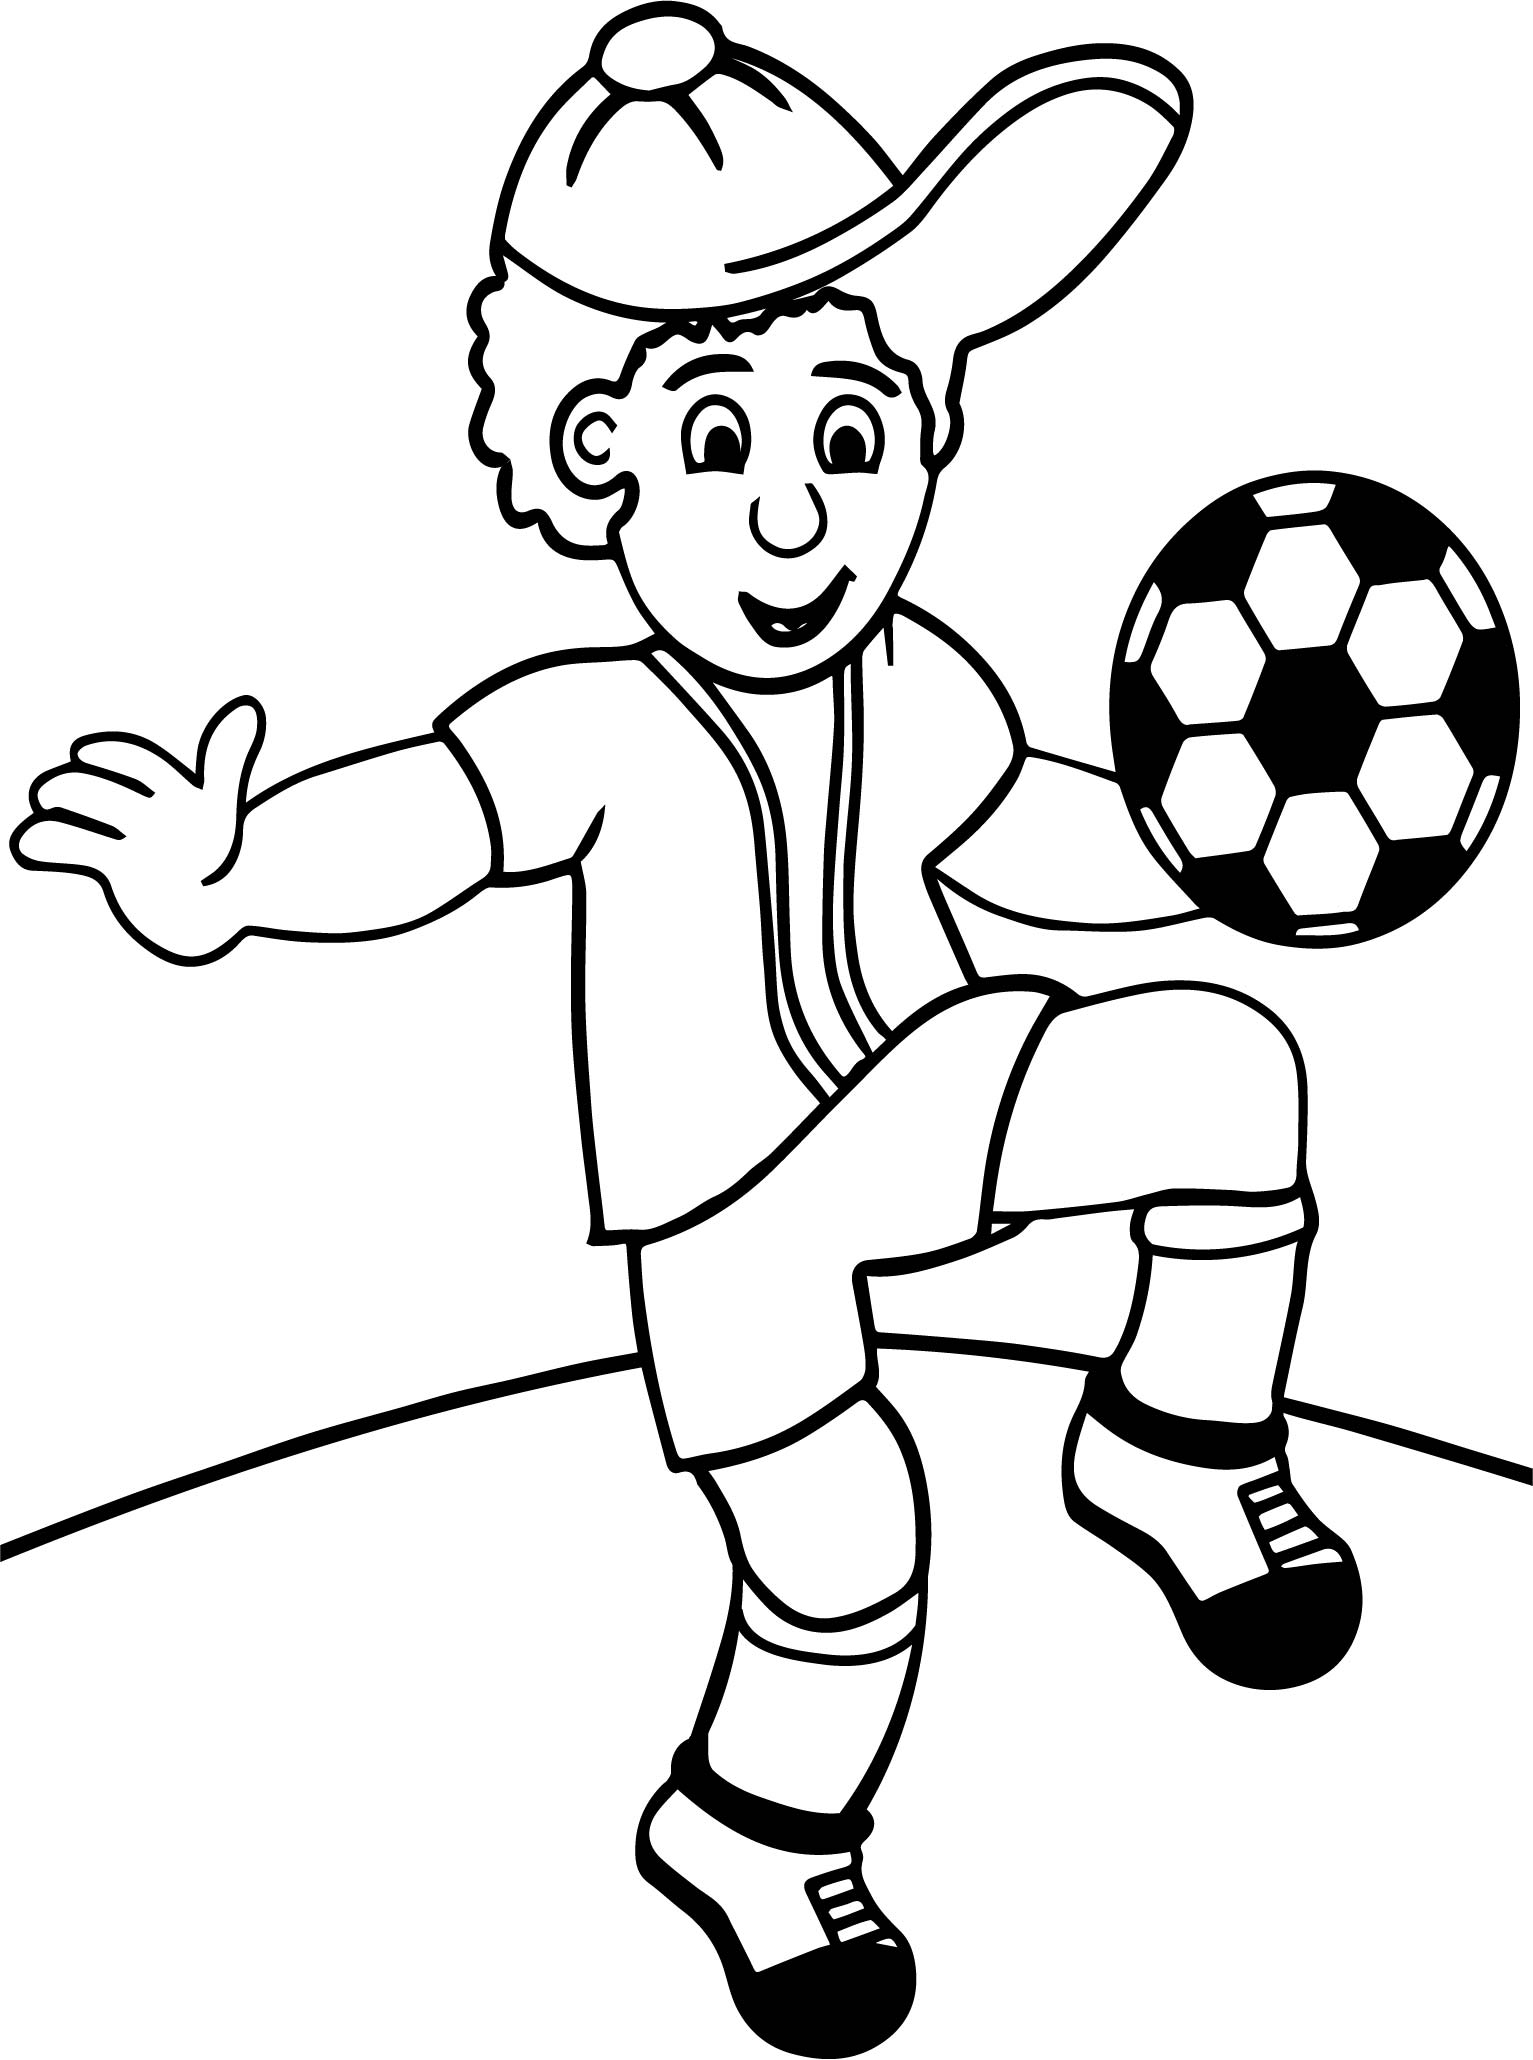 Cartoon Child Playing Football Toots Hallam Playing